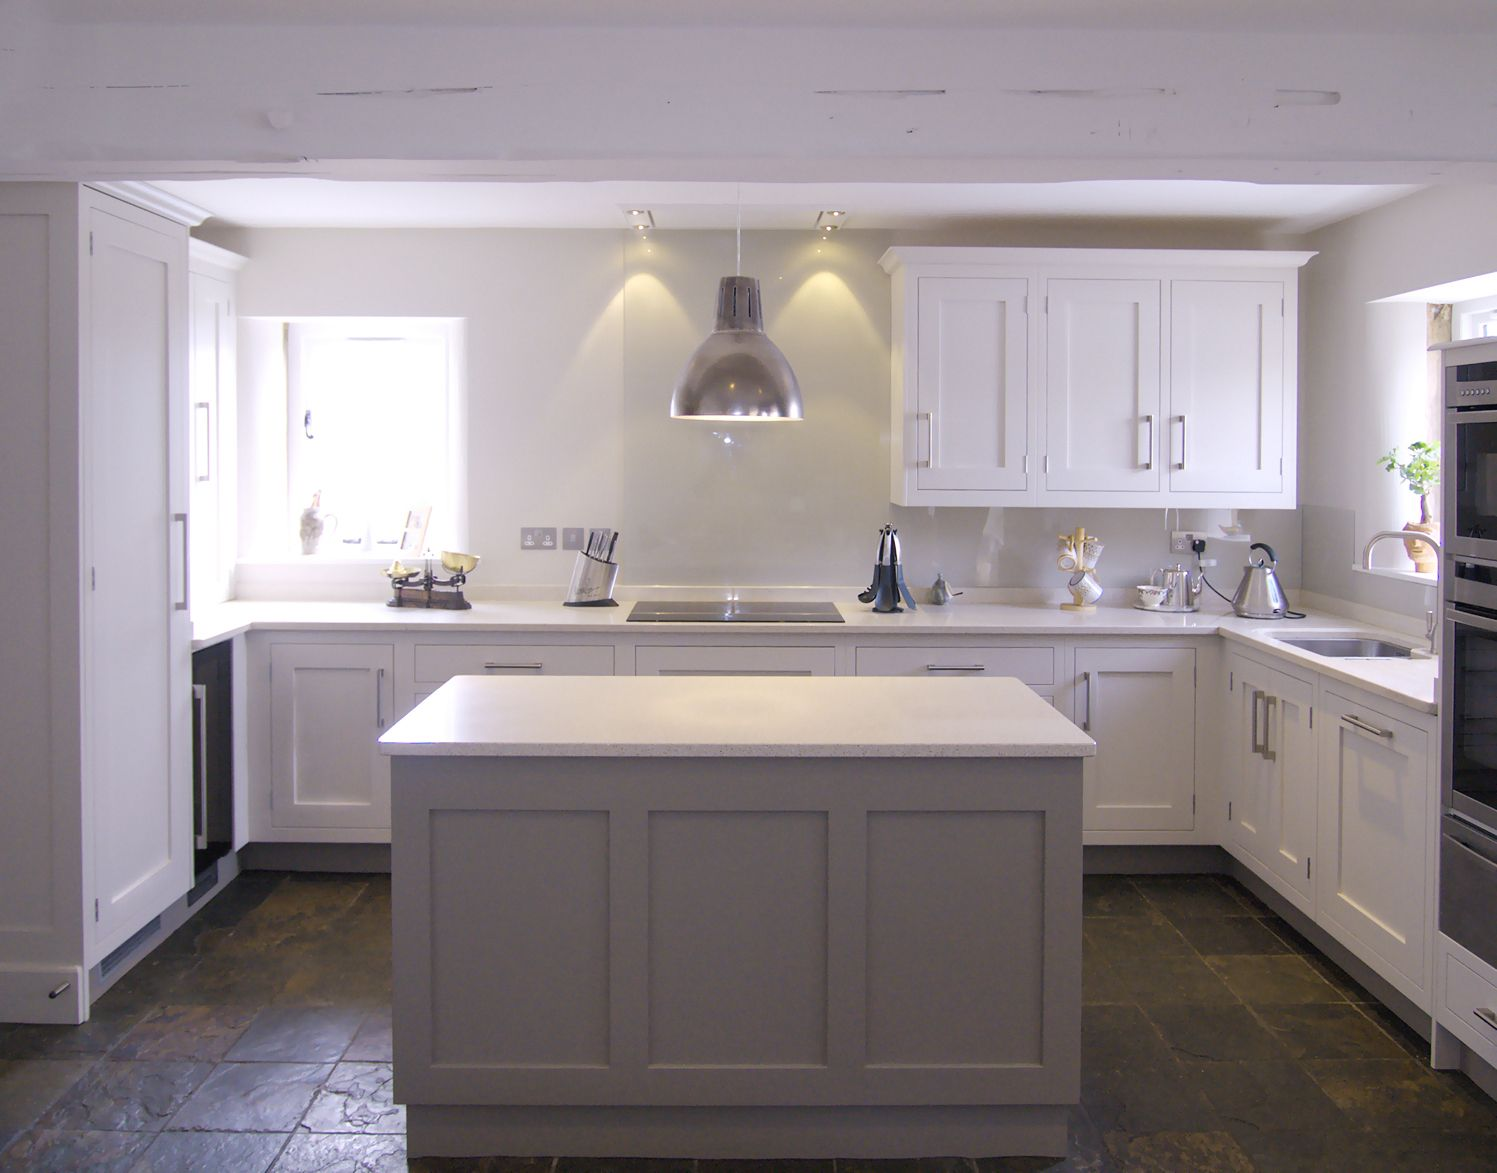 Best Farrow Ball Skimming Stone 241 Main Kitchen Farrow 640 x 480